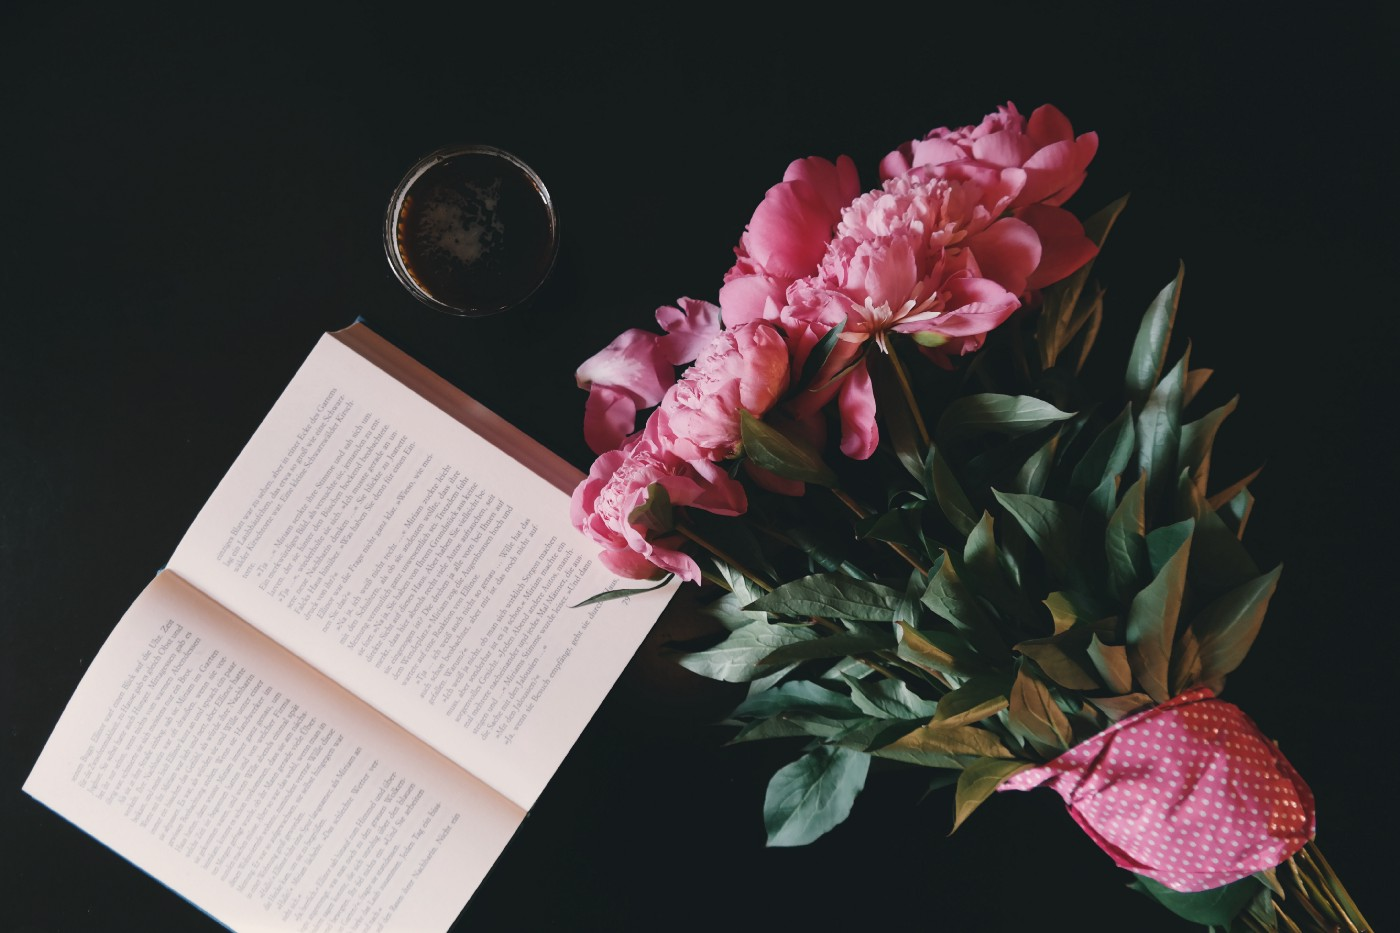 An open book on a table, with a cup of coffee and a bouquet of flowers.